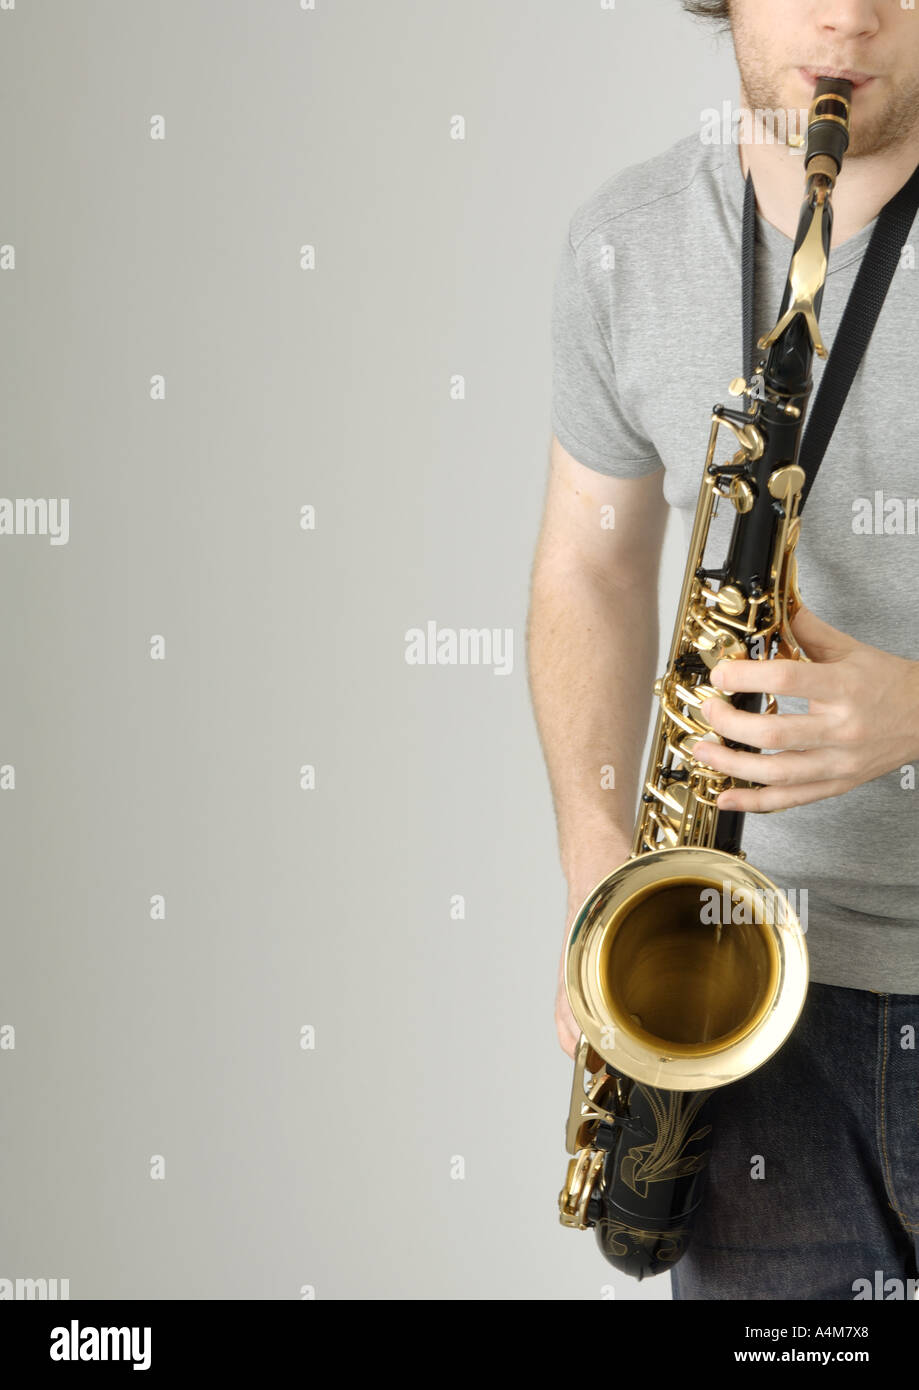 Young man playing saxophone, partial view - Stock Image